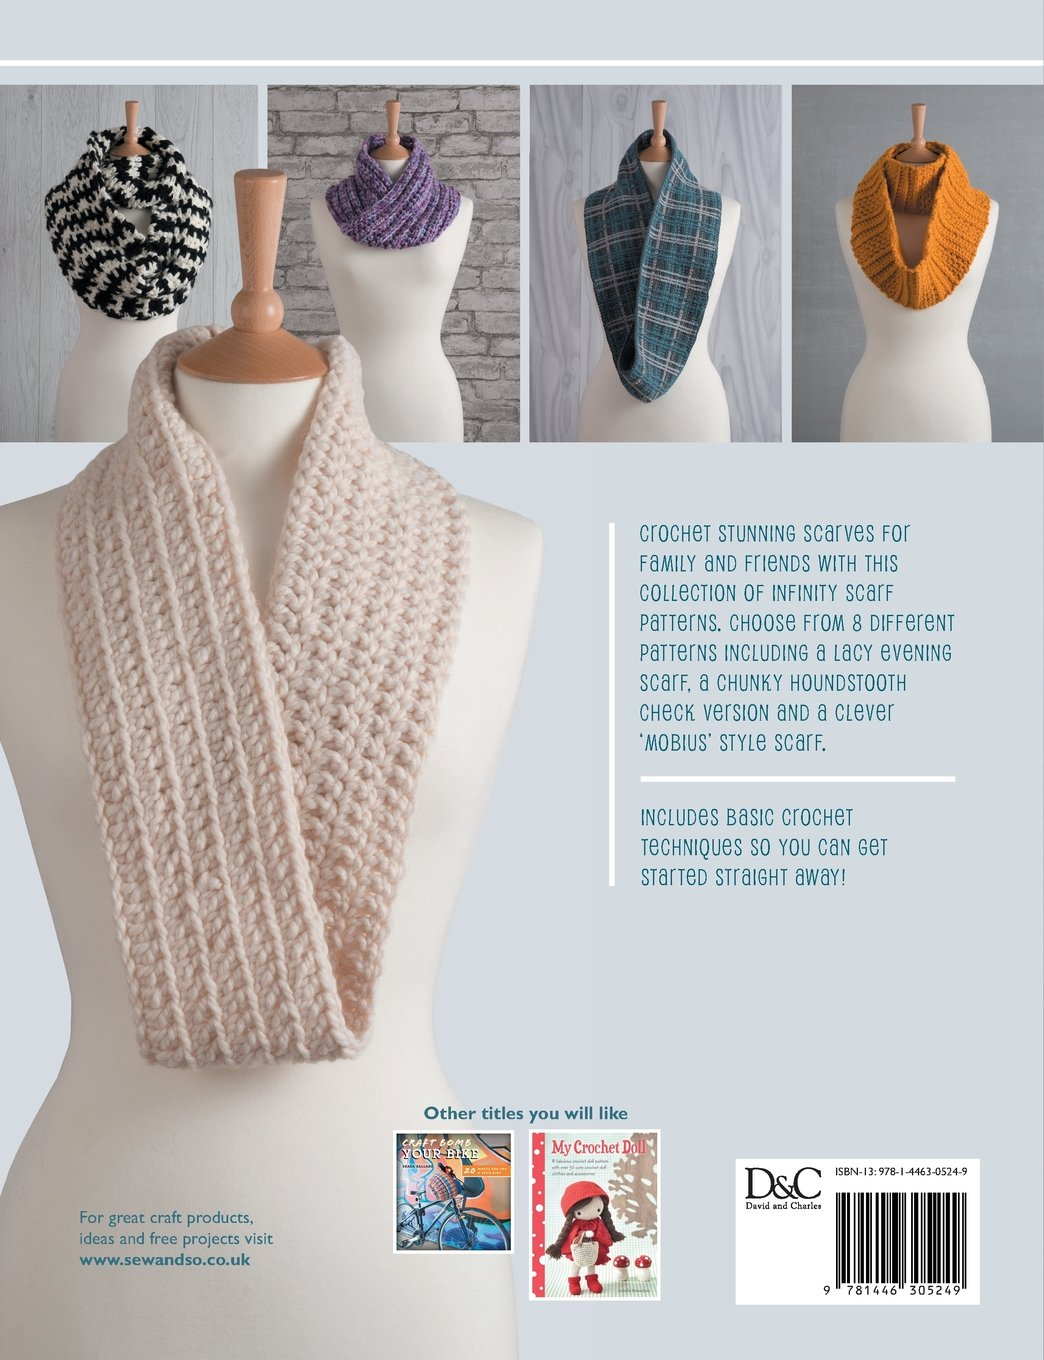 Crochet Infinity Scarves: 8 Simple Infinity Scarves To Crochet ...